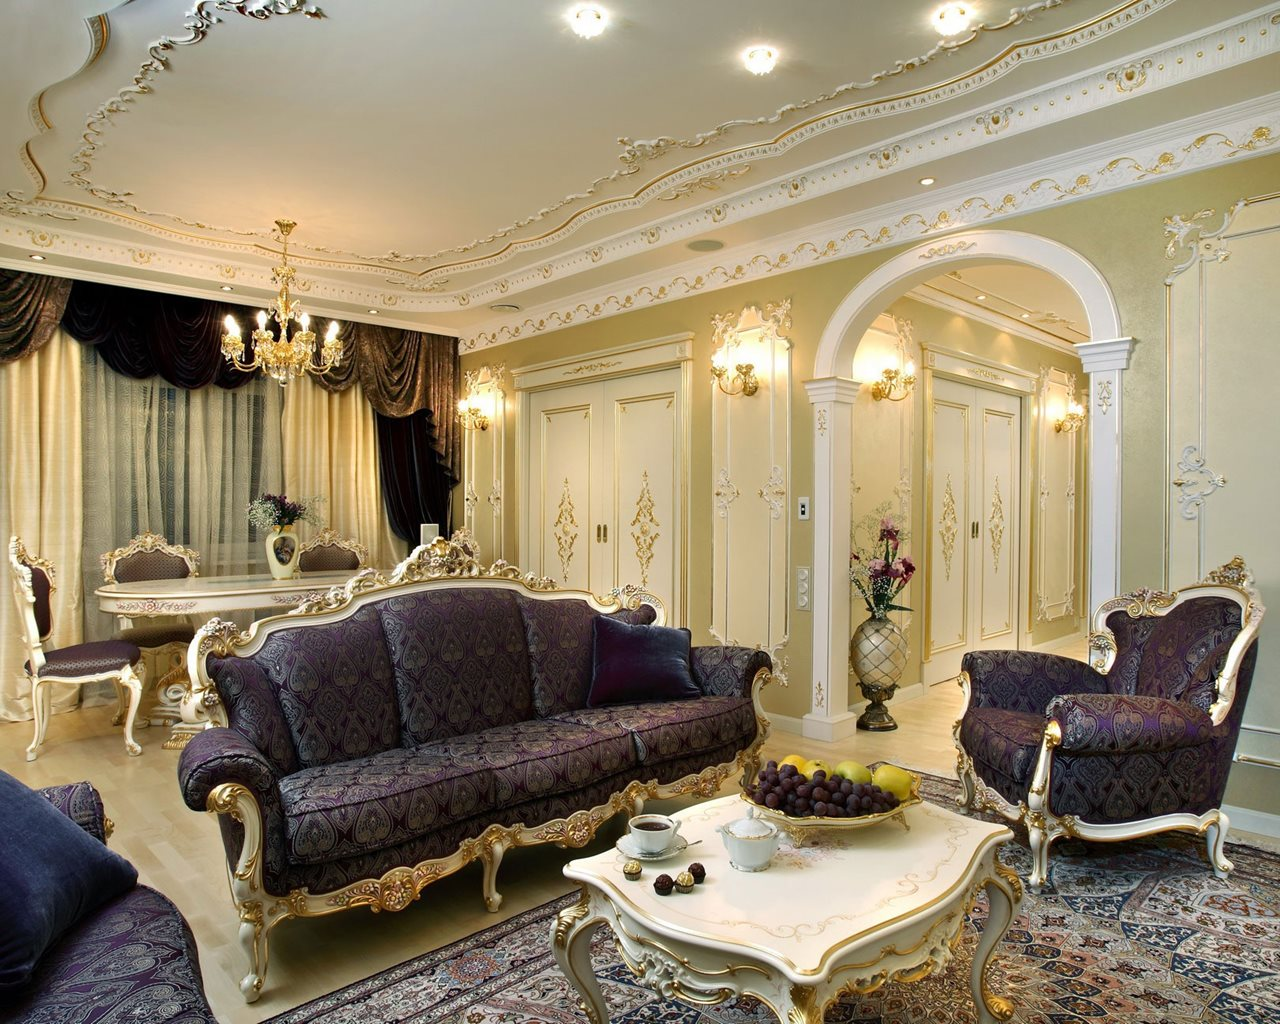 Baroque style interior design ideas for Room design living room